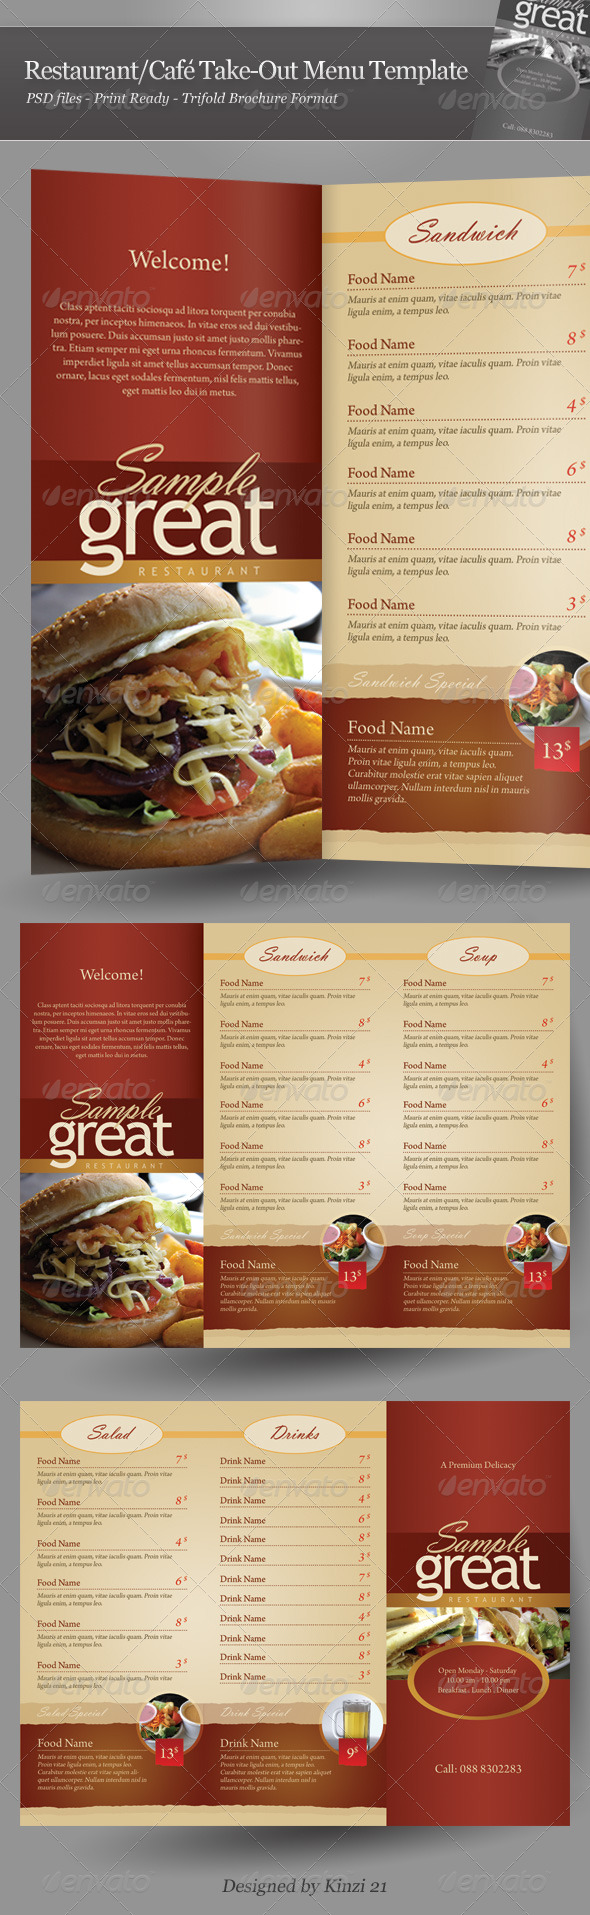 Restaurant / Cafe Take-out Menu Template